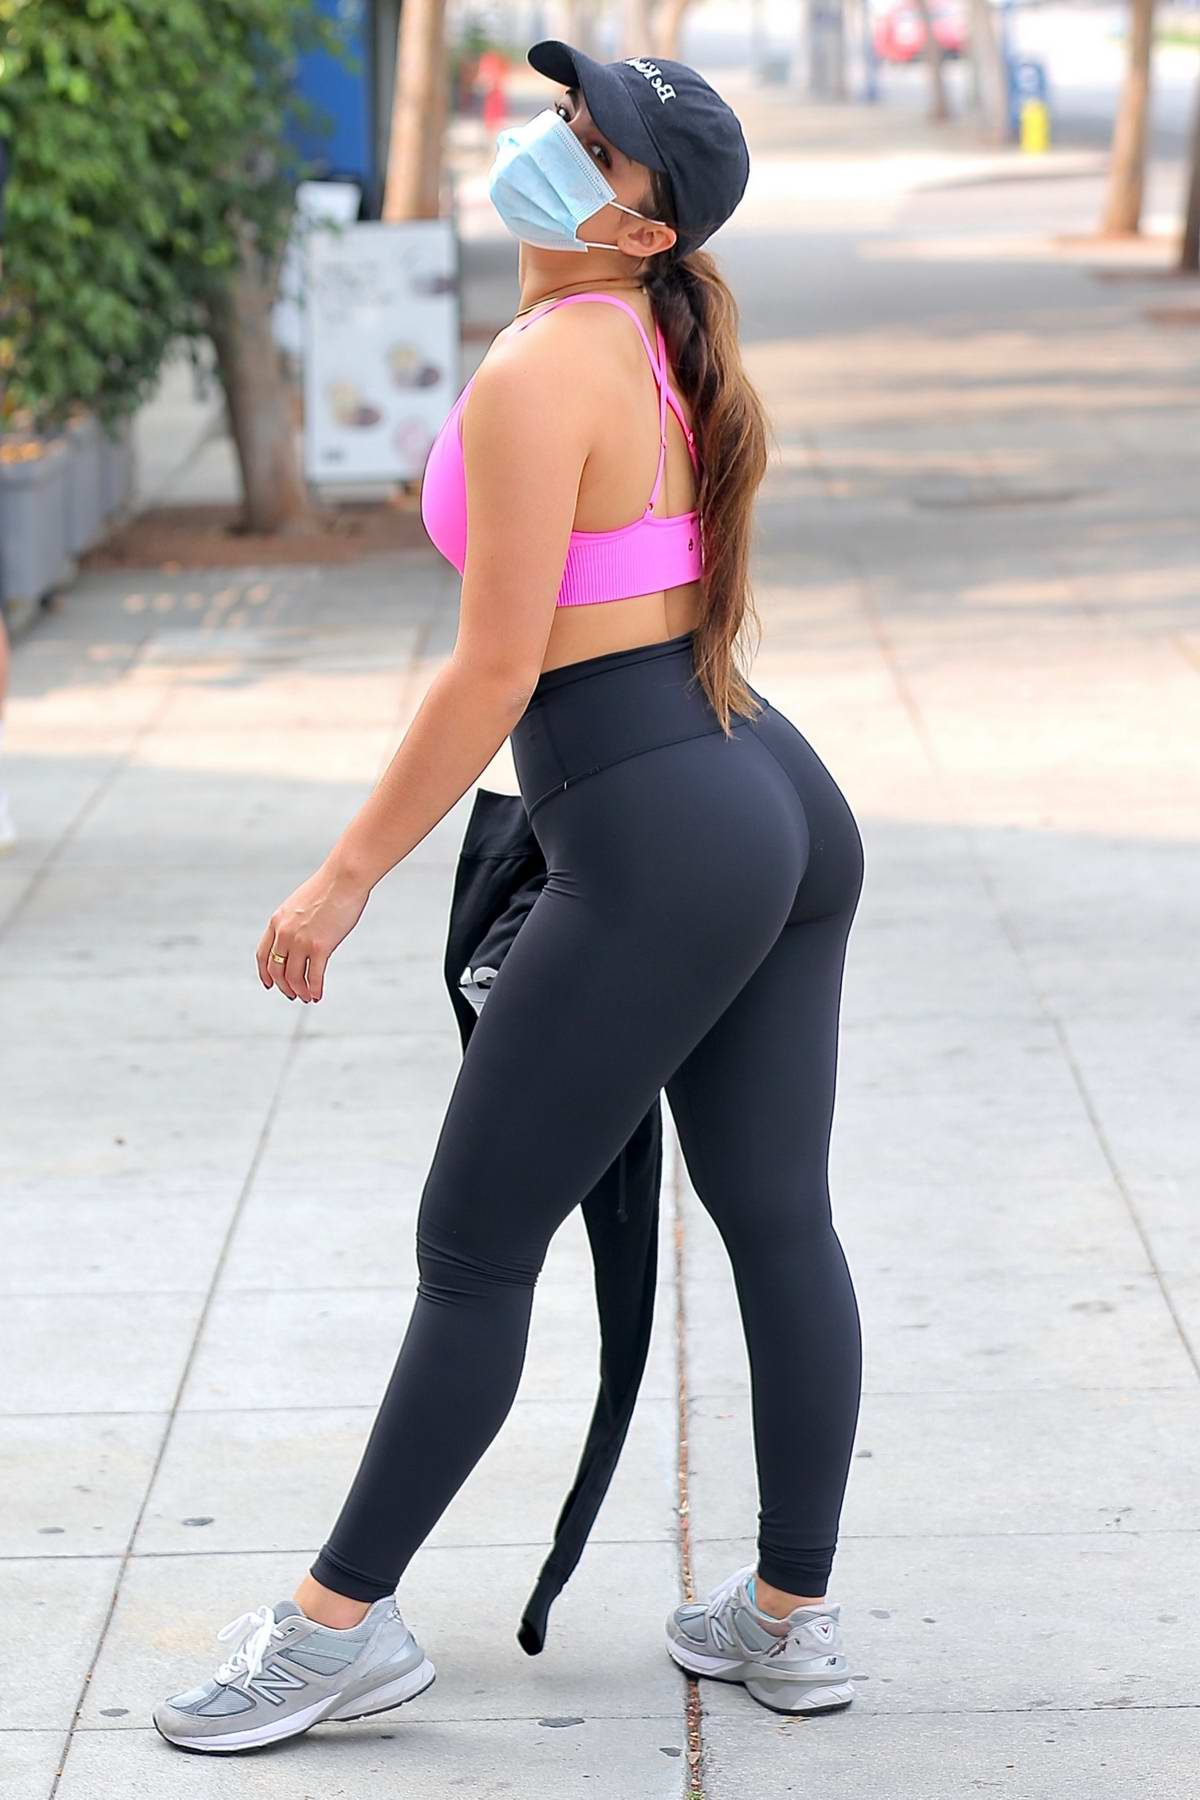 Addison Rae shows off her curves in a pink sports bra and black leggings while leaving workout in West Hollywood, California